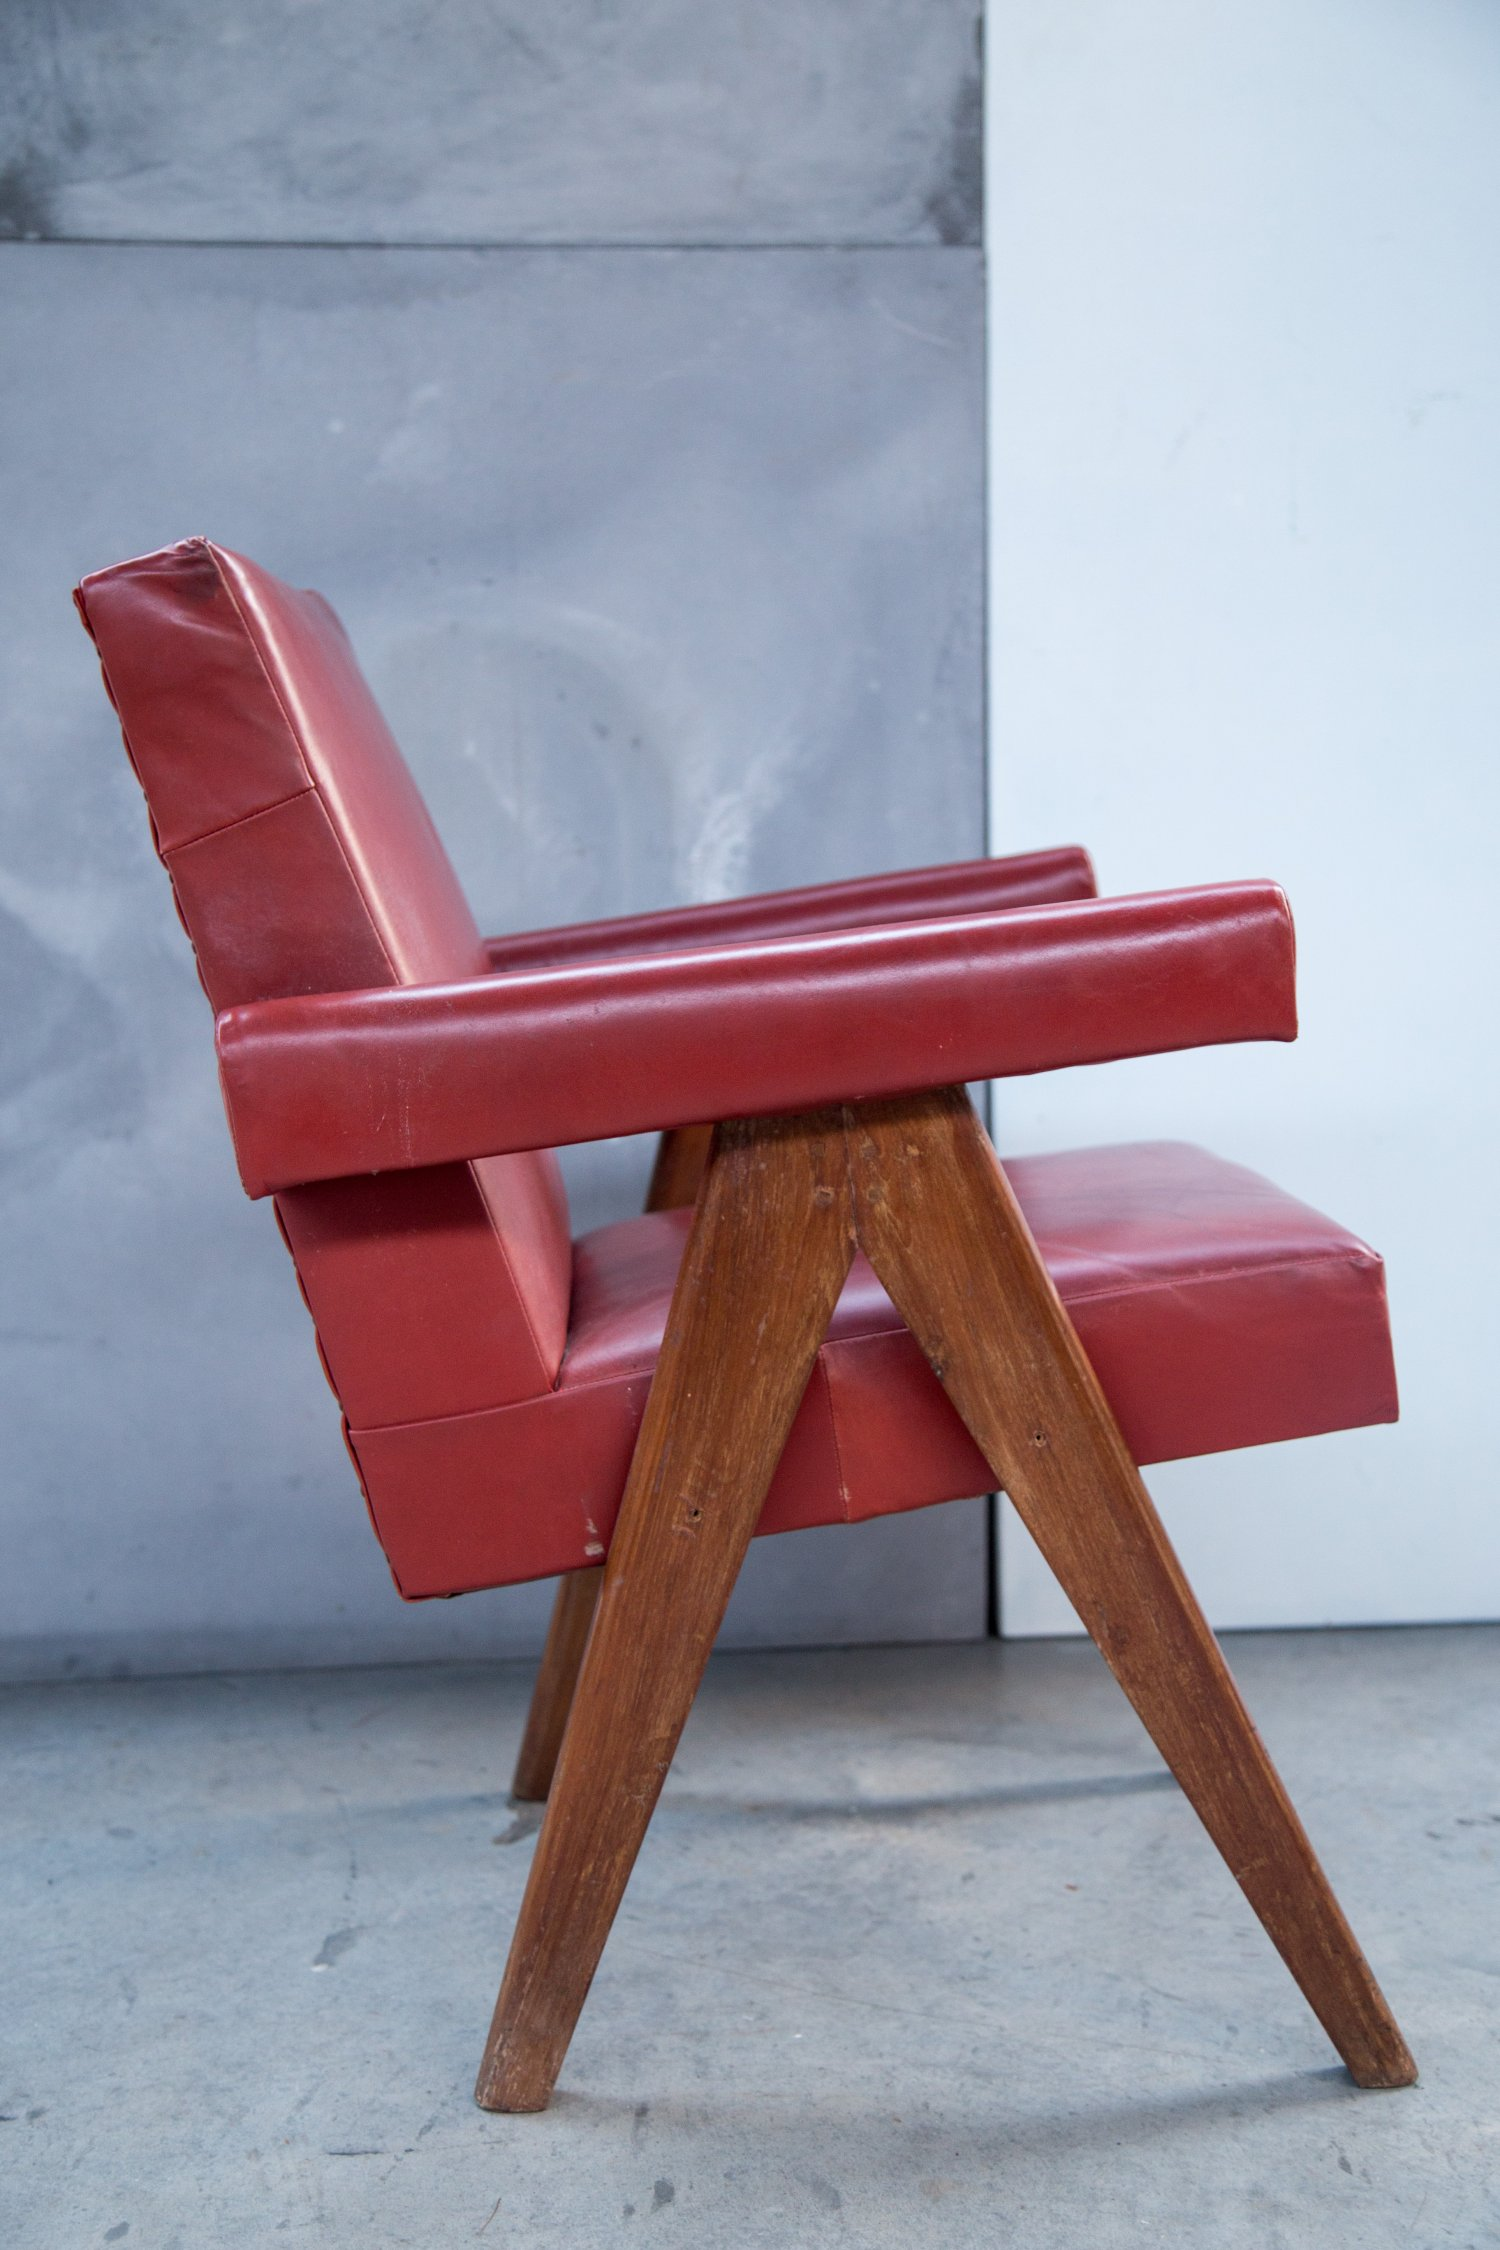 Pair of Pierre Jeanneret chairs